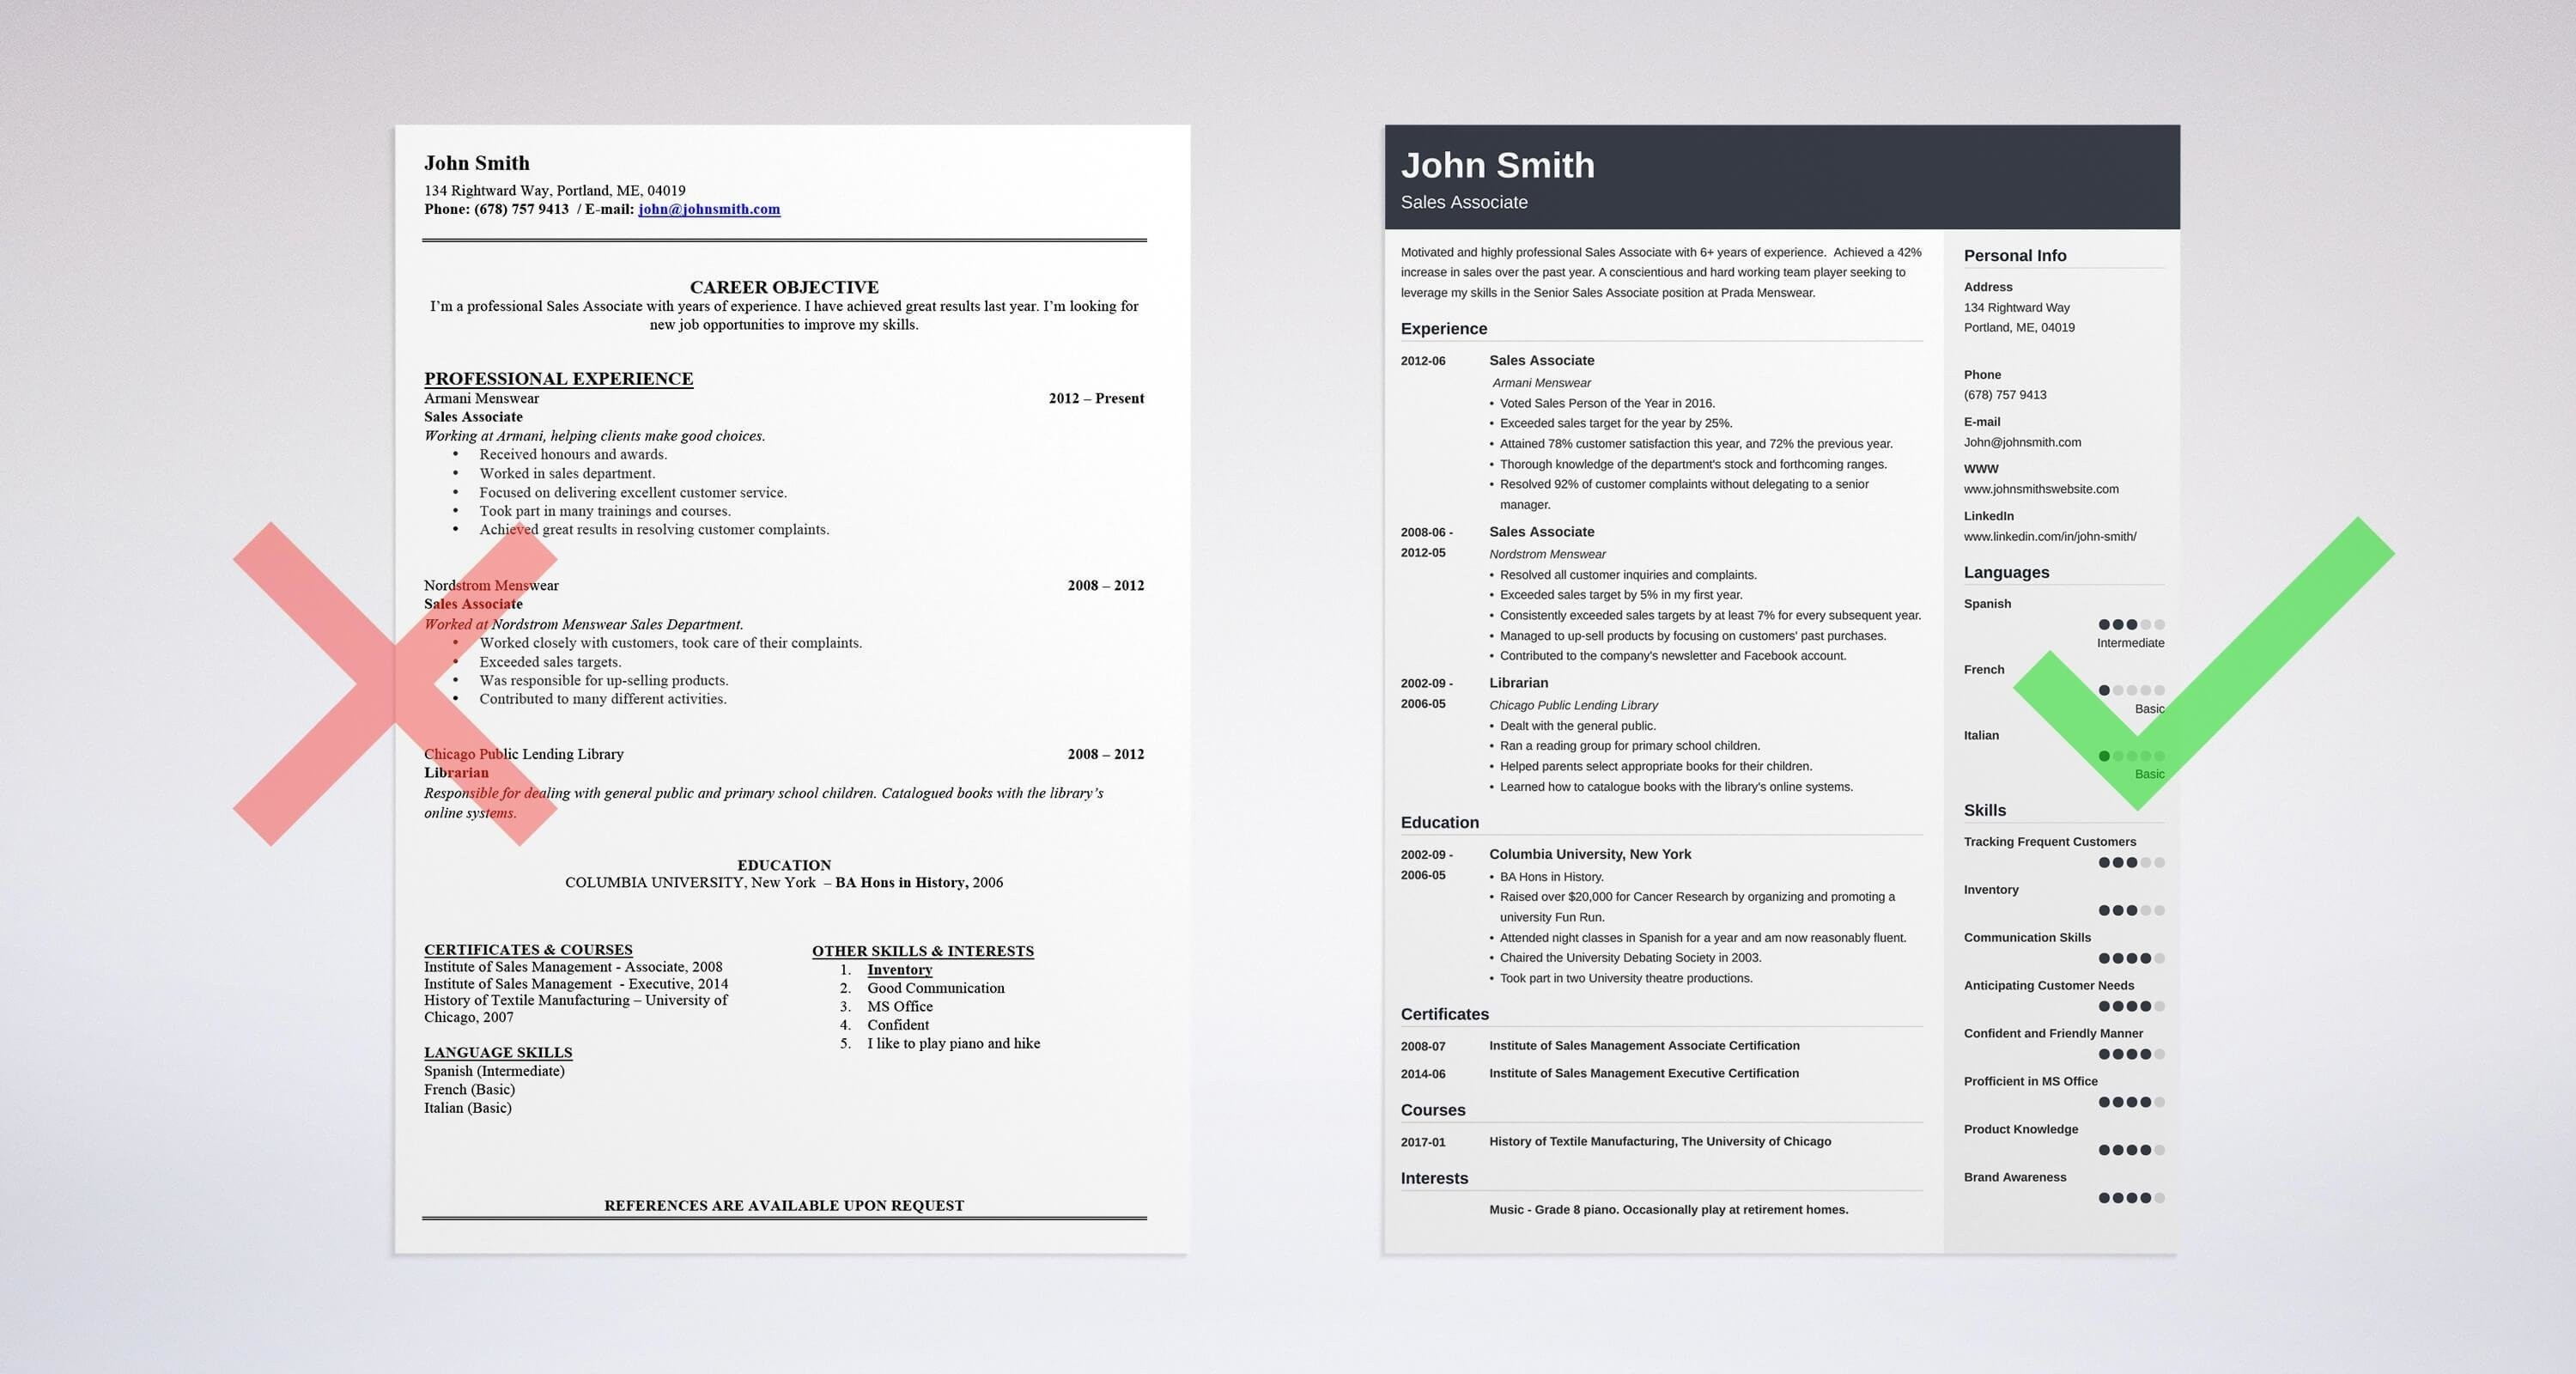 Interests On Resume - Interest Section Resume Examples Elegant Beautiful Grapher Resume